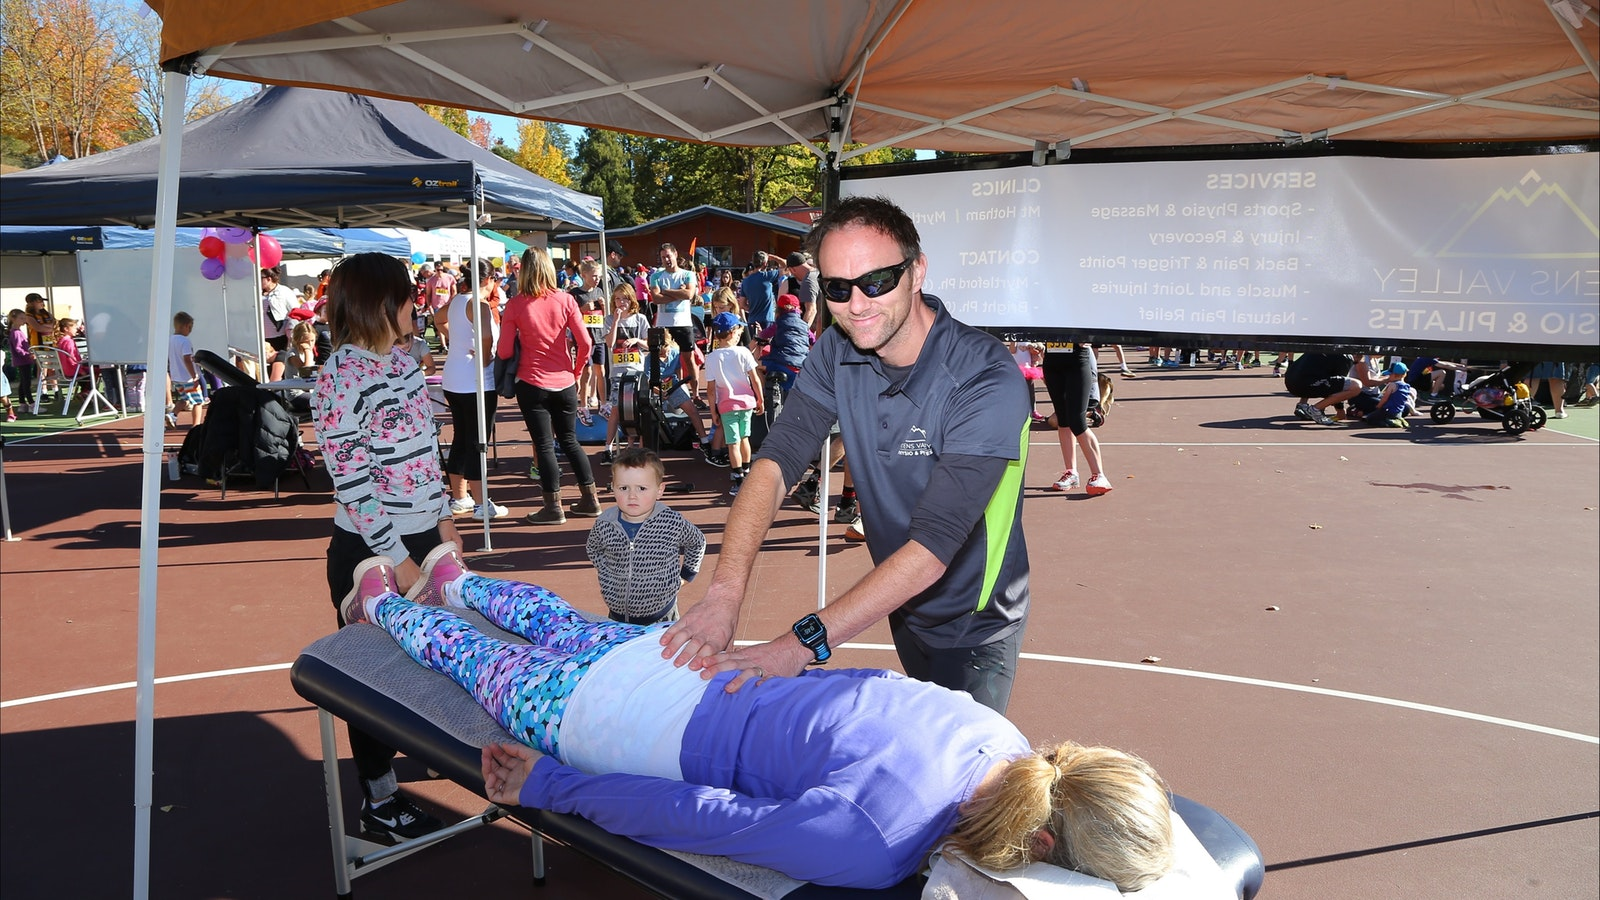 Getting a massage from Ovens Valley Physio and Pilates